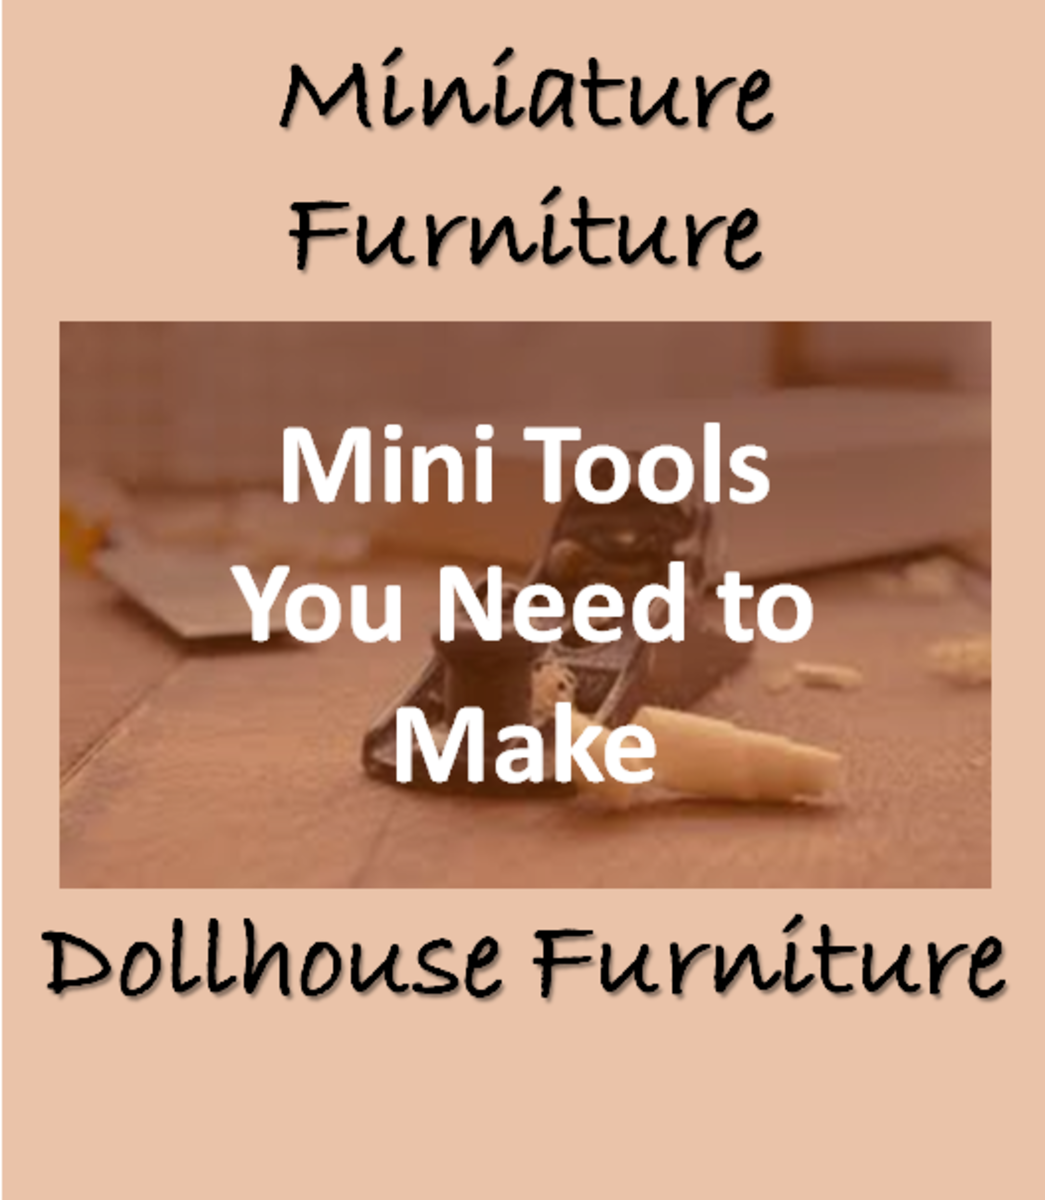 Miniature Furniture Tools You Need for Dollhouse Furniture Making